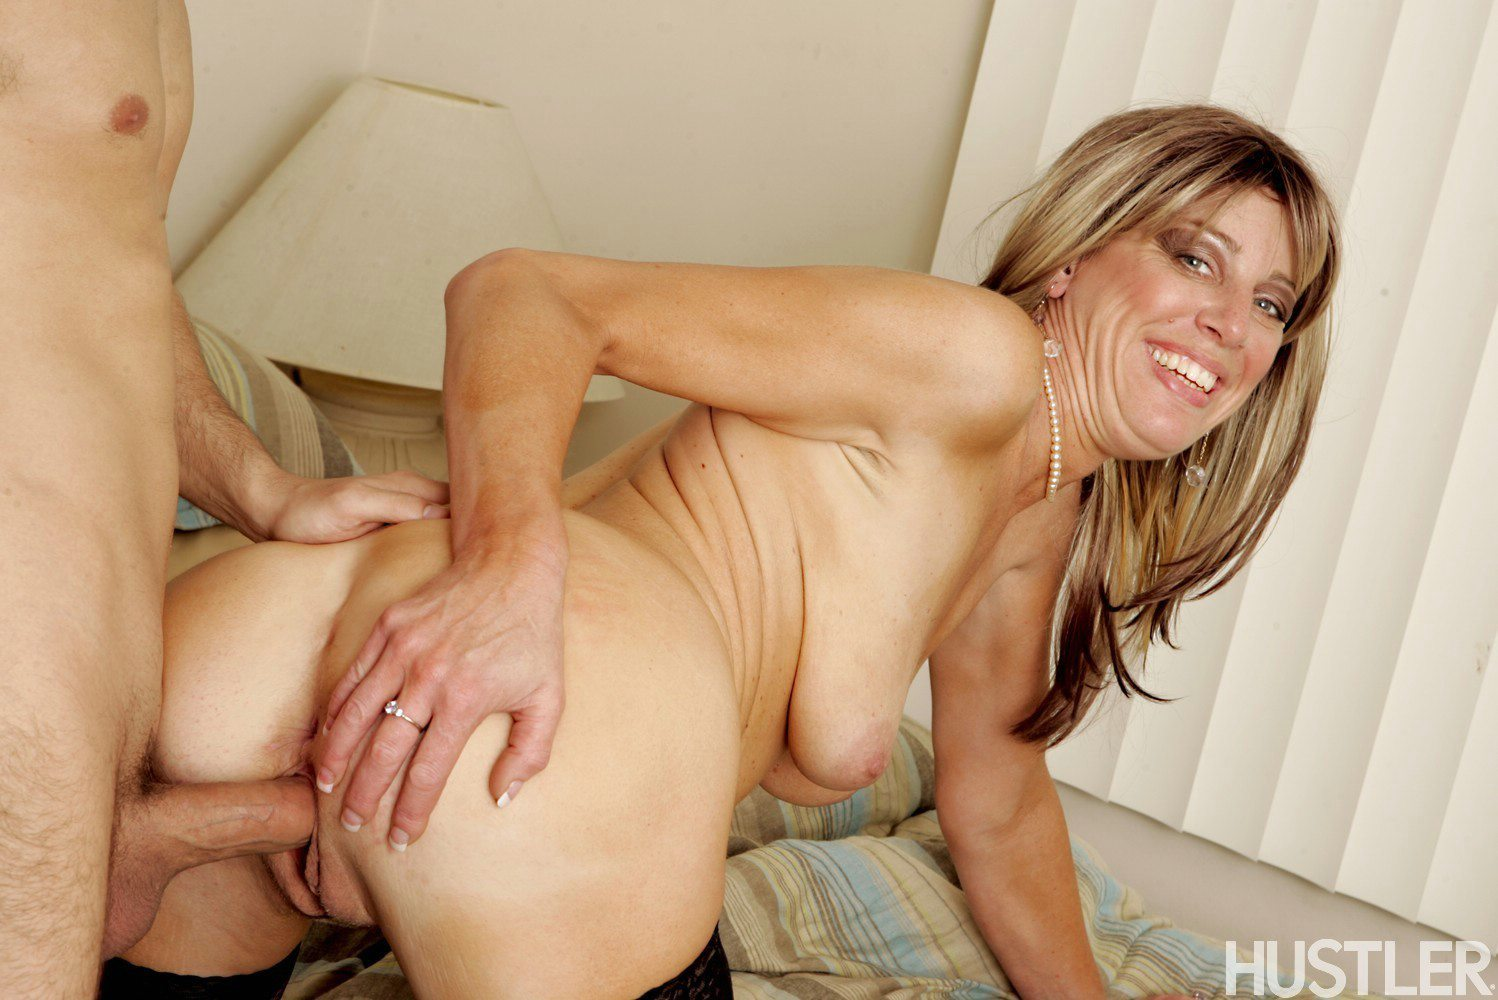 Liz summers milf spreads and toys